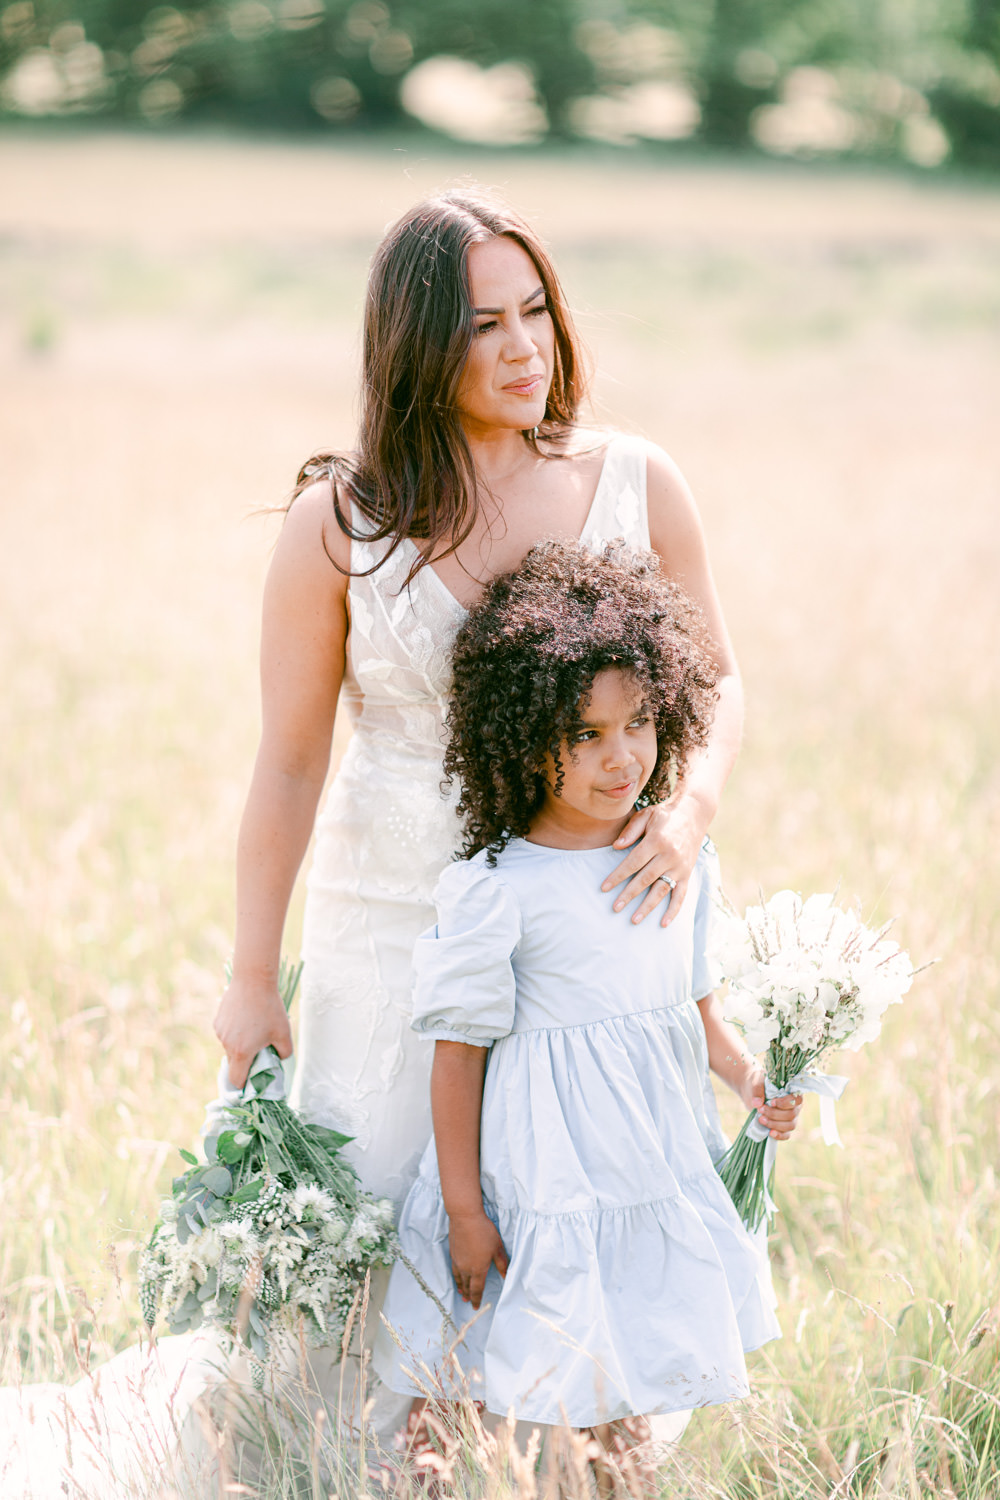 Flower Girl Blue Dress Family Elopement Ideas Sophie May Photo